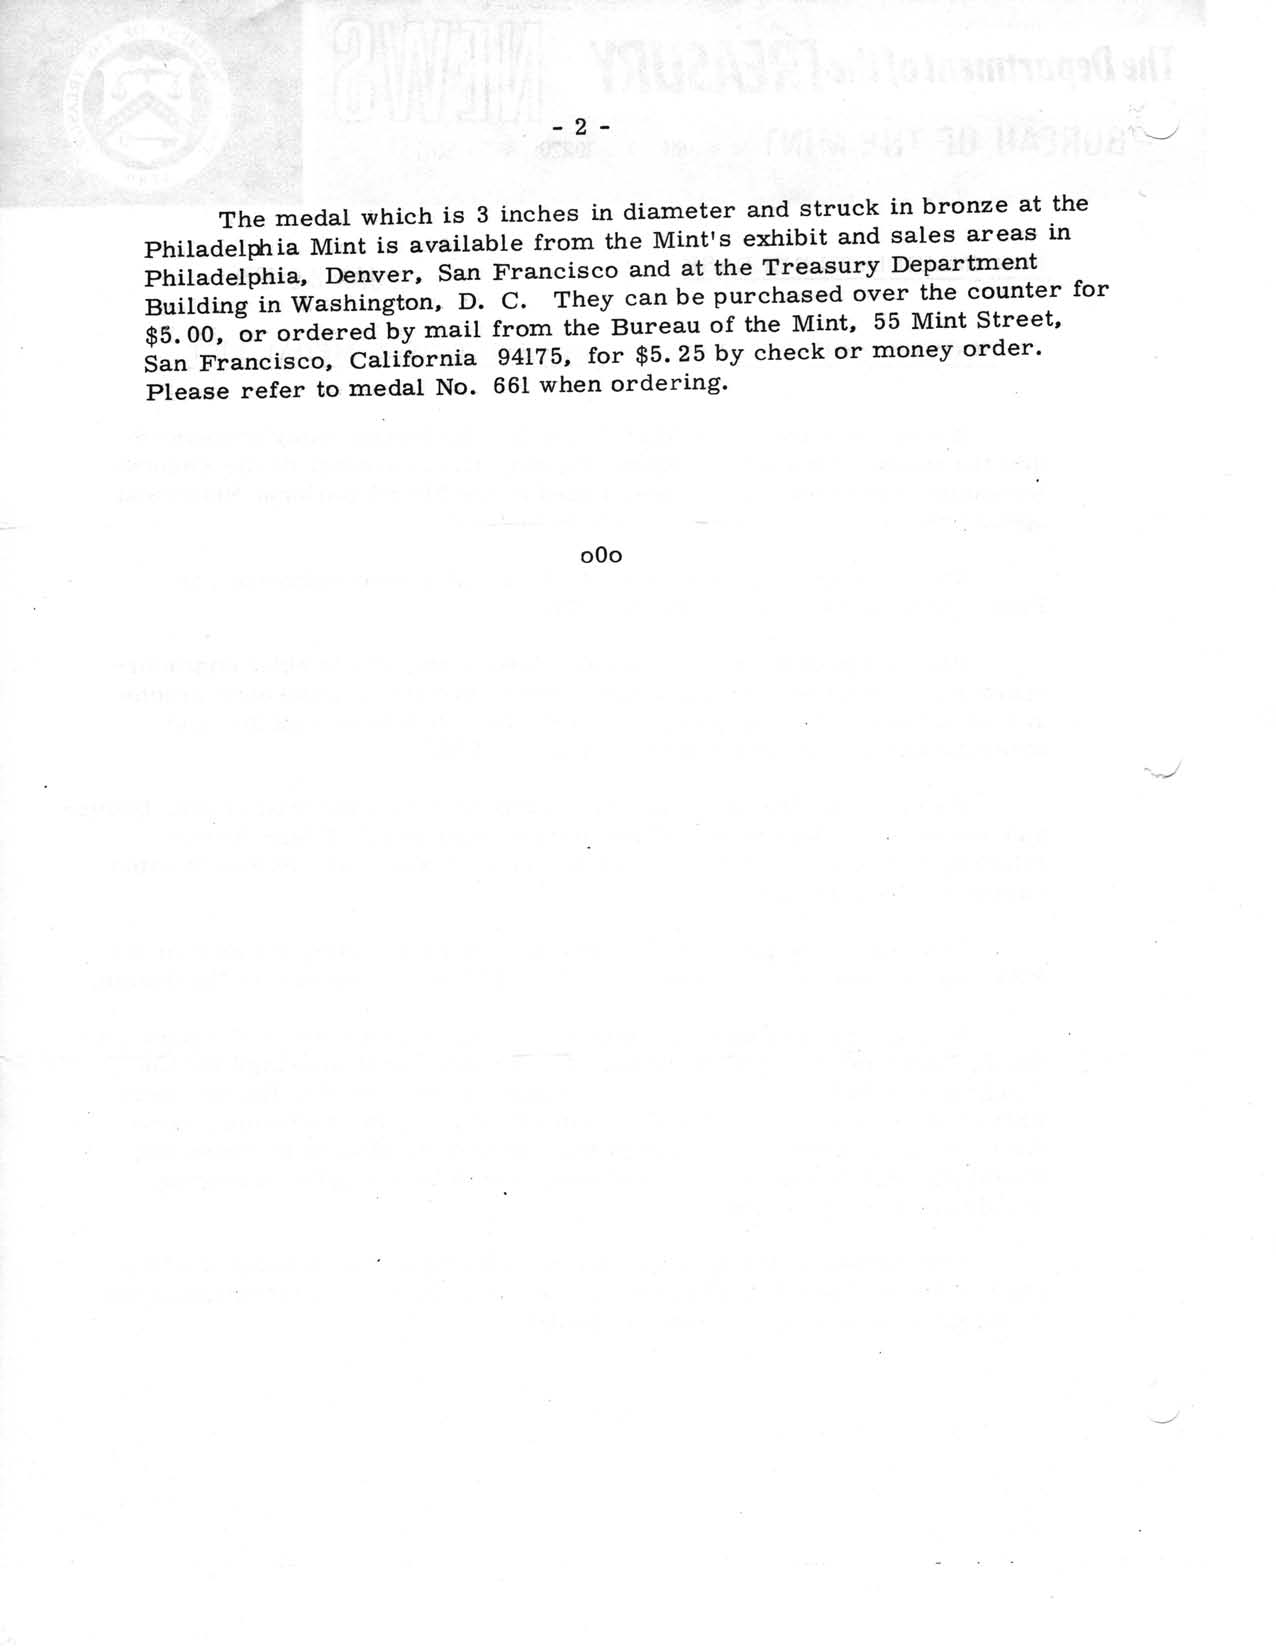 Historic Press Release: Hoover Medal on Medal List, Page 2